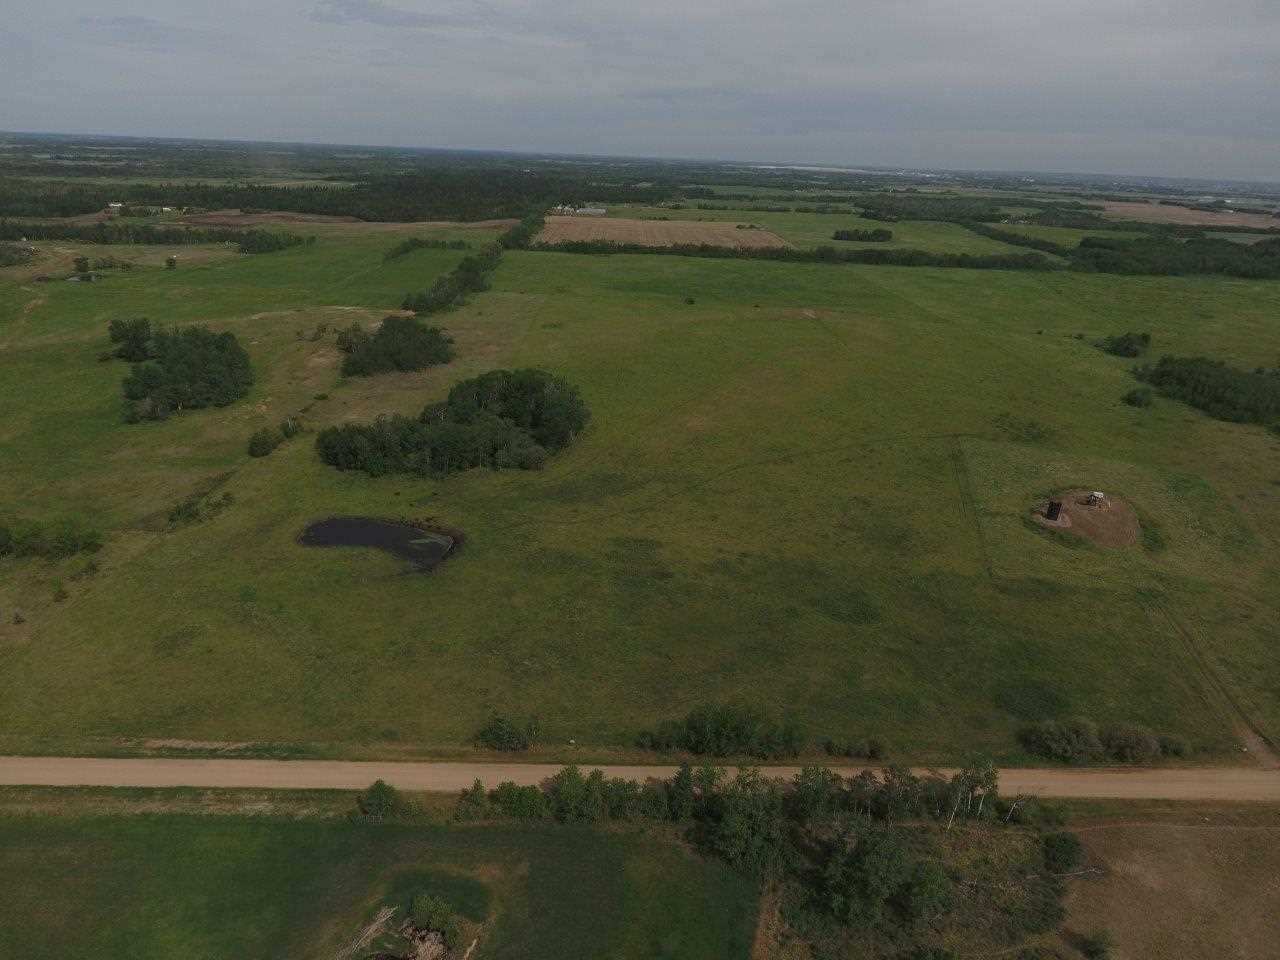 Main Photo: RR 230 & Twp564 4-22-56-31-SW: Rural Sturgeon County Rural Land/Vacant Lot for sale : MLS®# E4187904